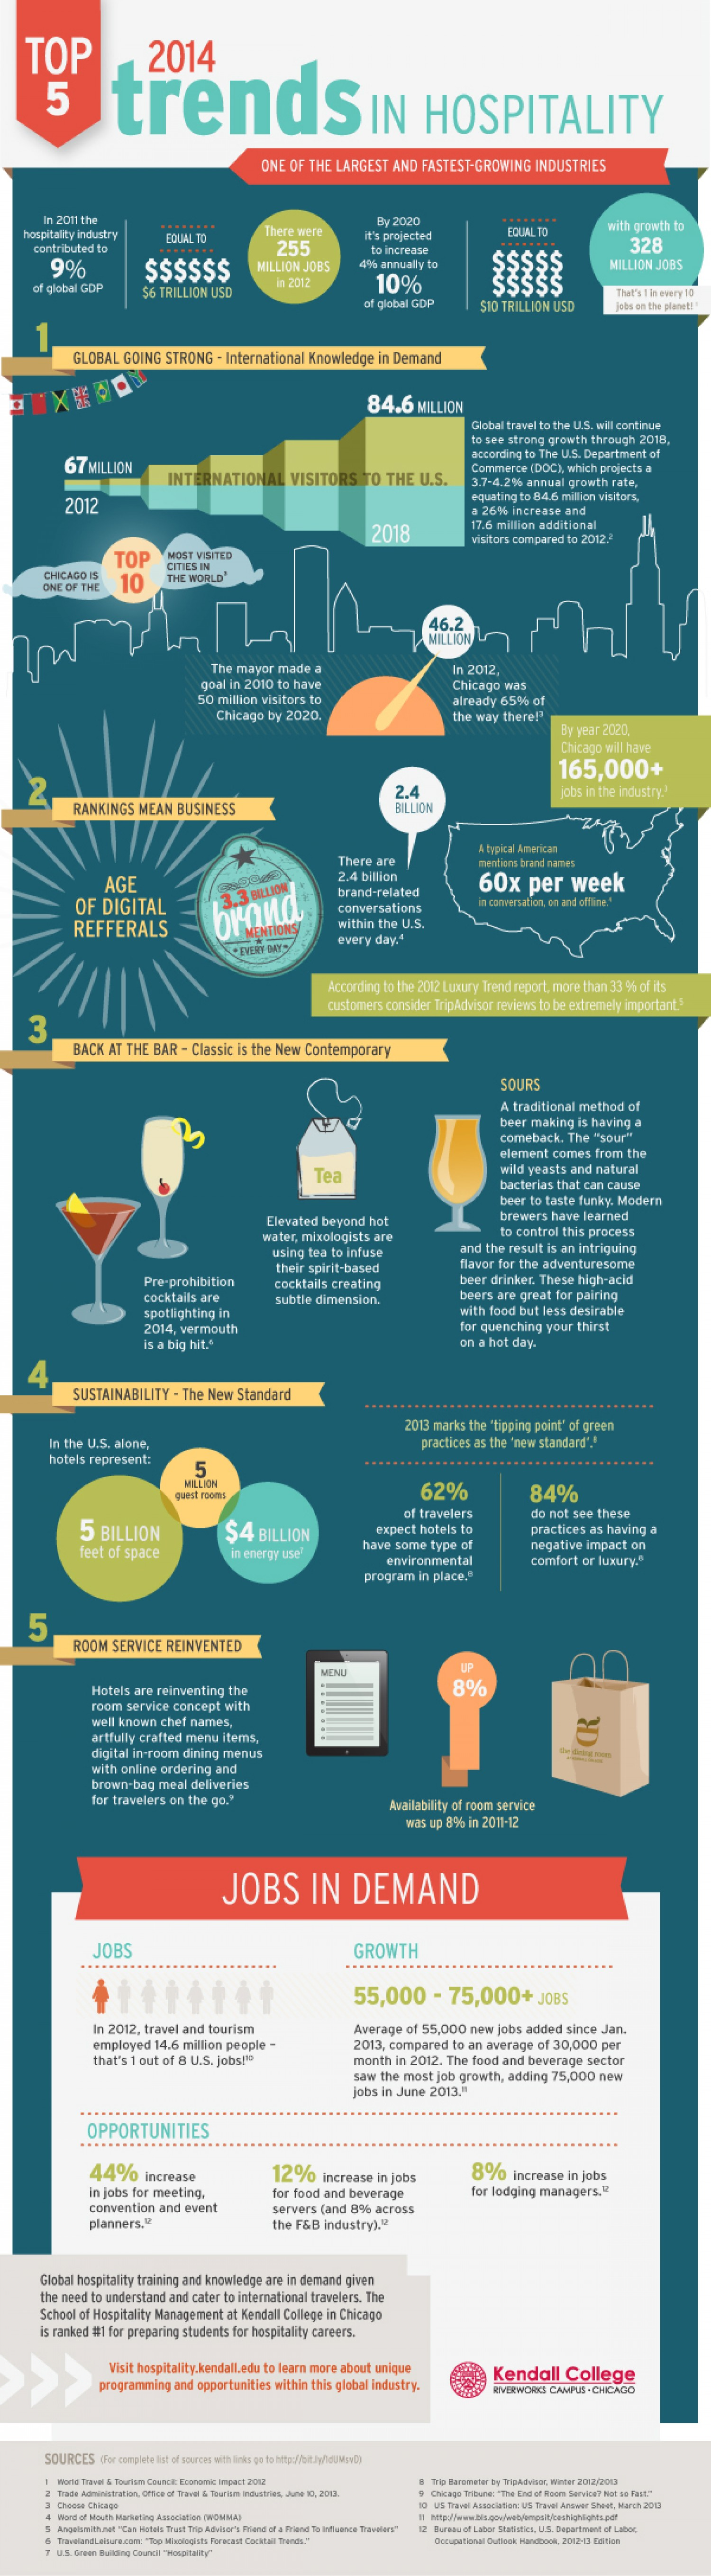 infographic that talks about the top 5 trends in the